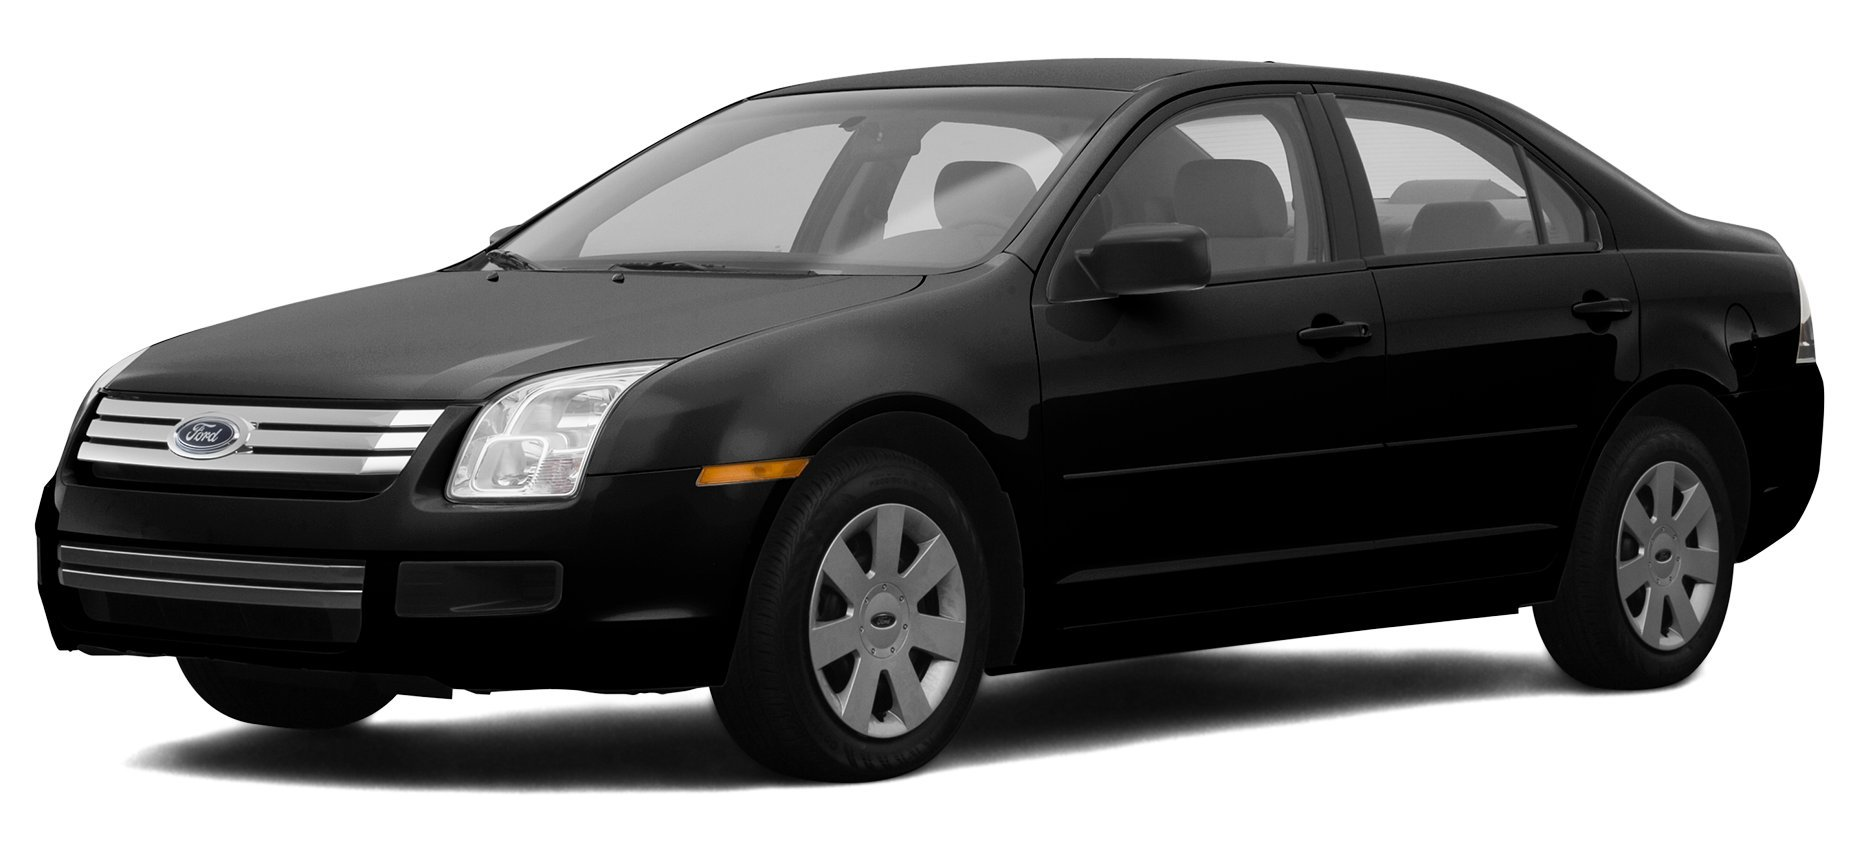 Black Ford Fusion >> Amazon Com 2008 Ford Fusion Reviews Images And Specs Vehicles